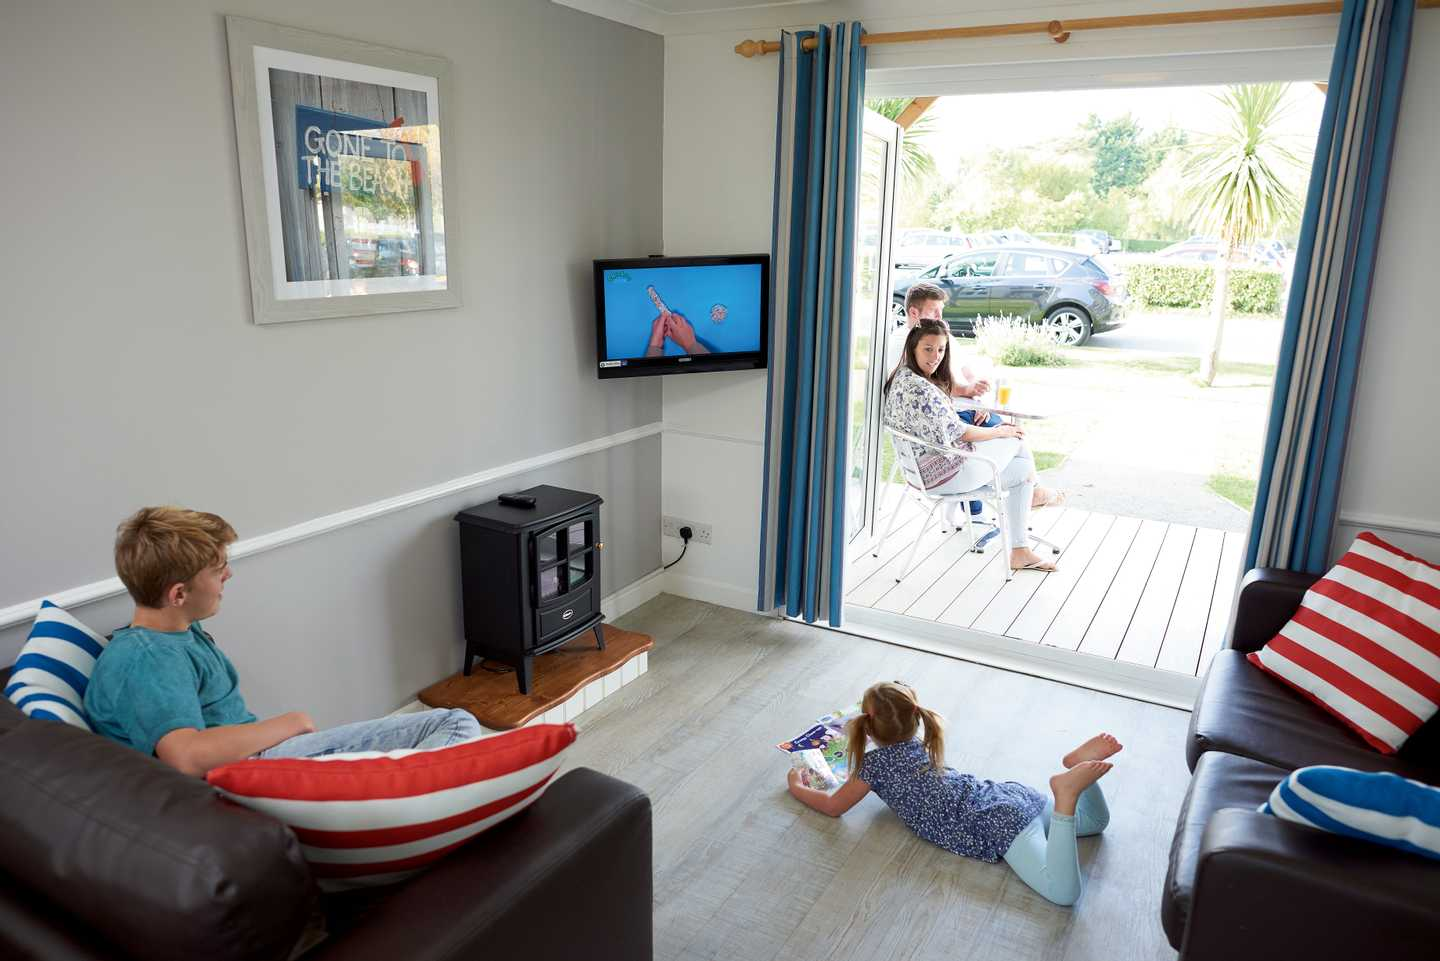 Two children watching TV in a Comfort with Veranda apartment with parents outside on the decking